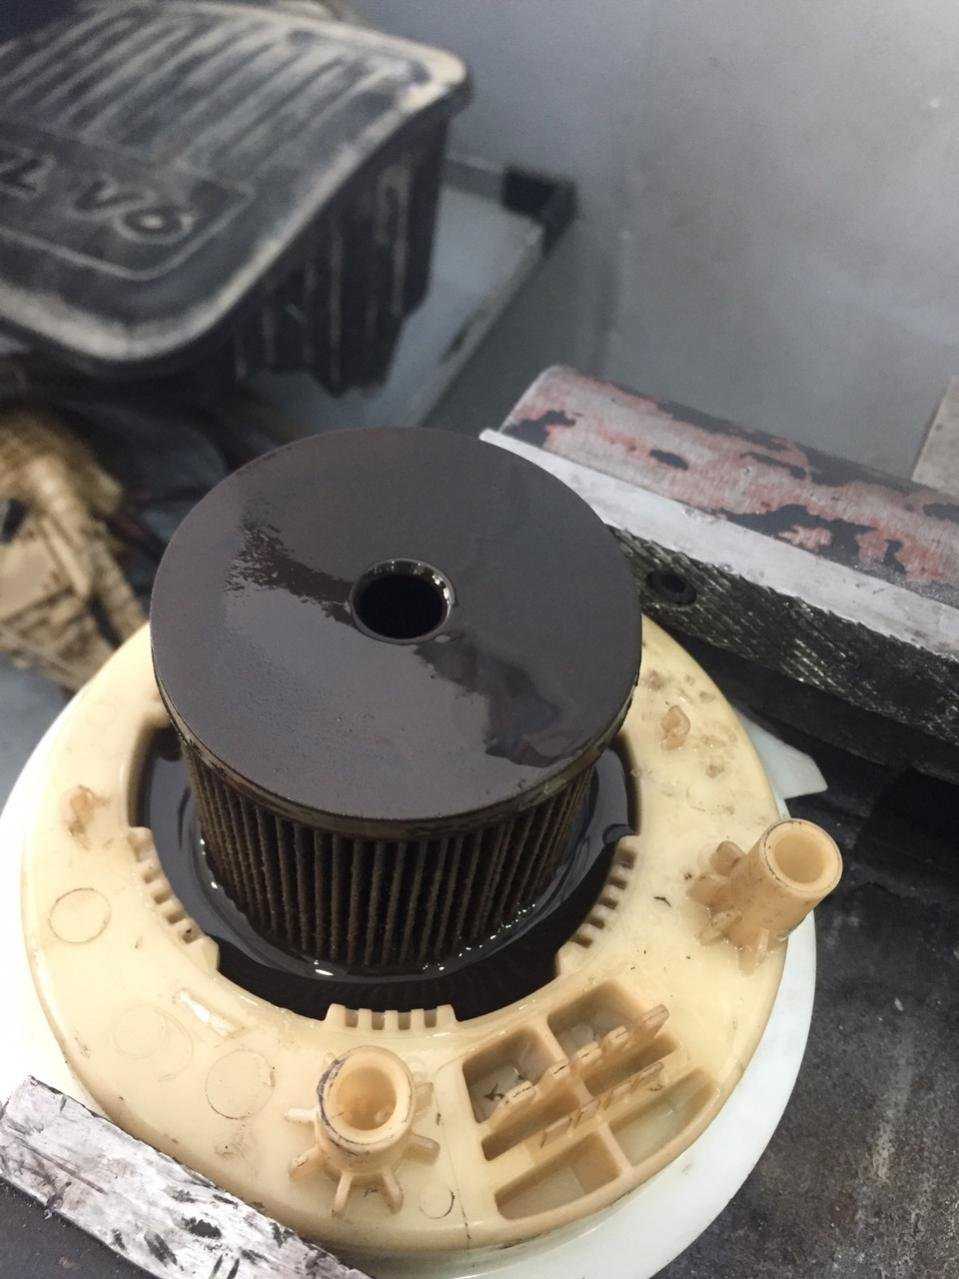 Chrysler 300 Fuel Filter 2005 Location 08 Sprinter Jerking When It Shifts Between Gears 300c 2008 Click